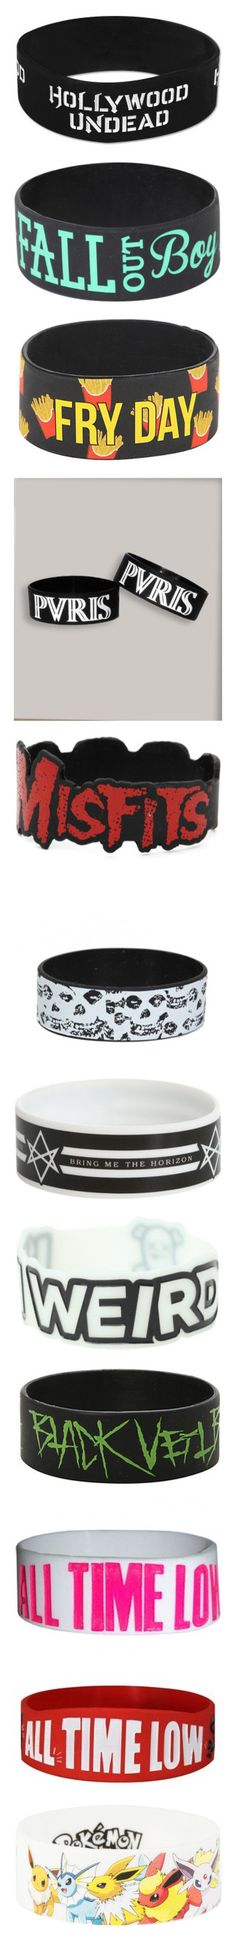 """""""Band Braclets 2"""" by chemicalfallout249 ❤ liked on Polyvore featuring jewelry, bracelets, accessories, rubber bracelets, rubber bangles, logo jewelry, rubber jewelry, band merch, green bangles and anchor jewellery"""